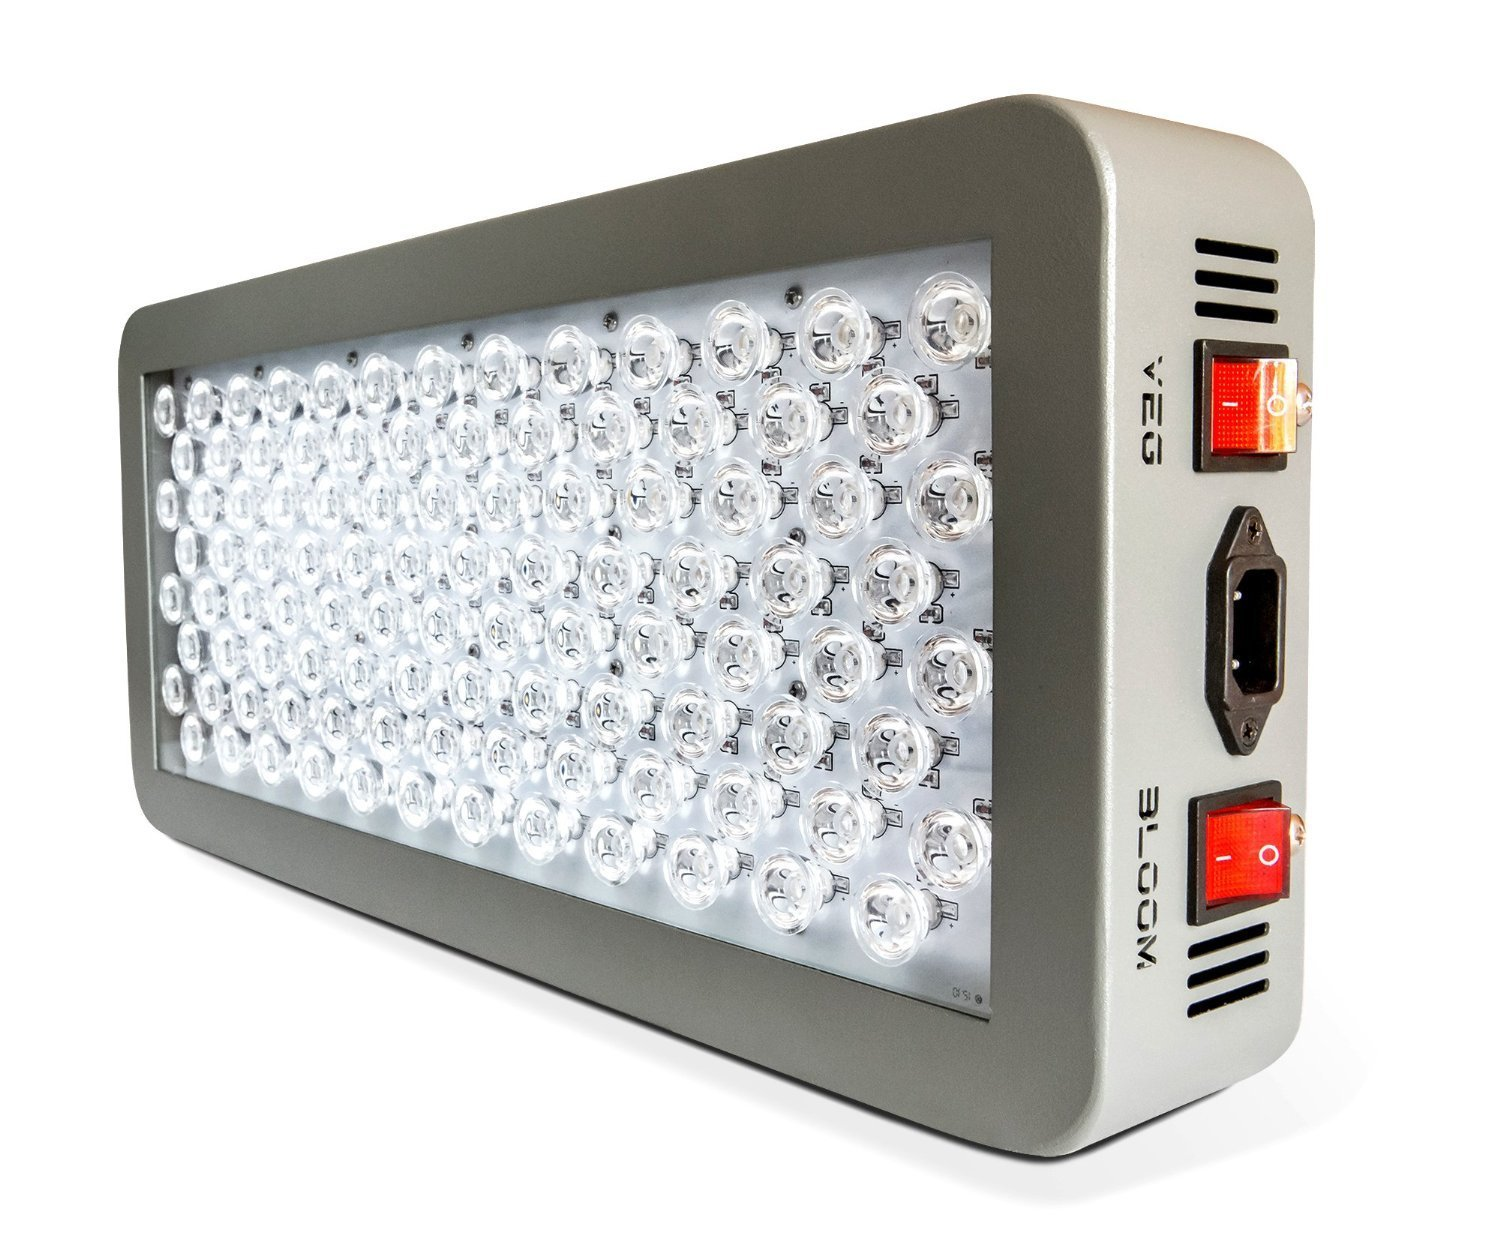 Highest Rated LED Grow Lights